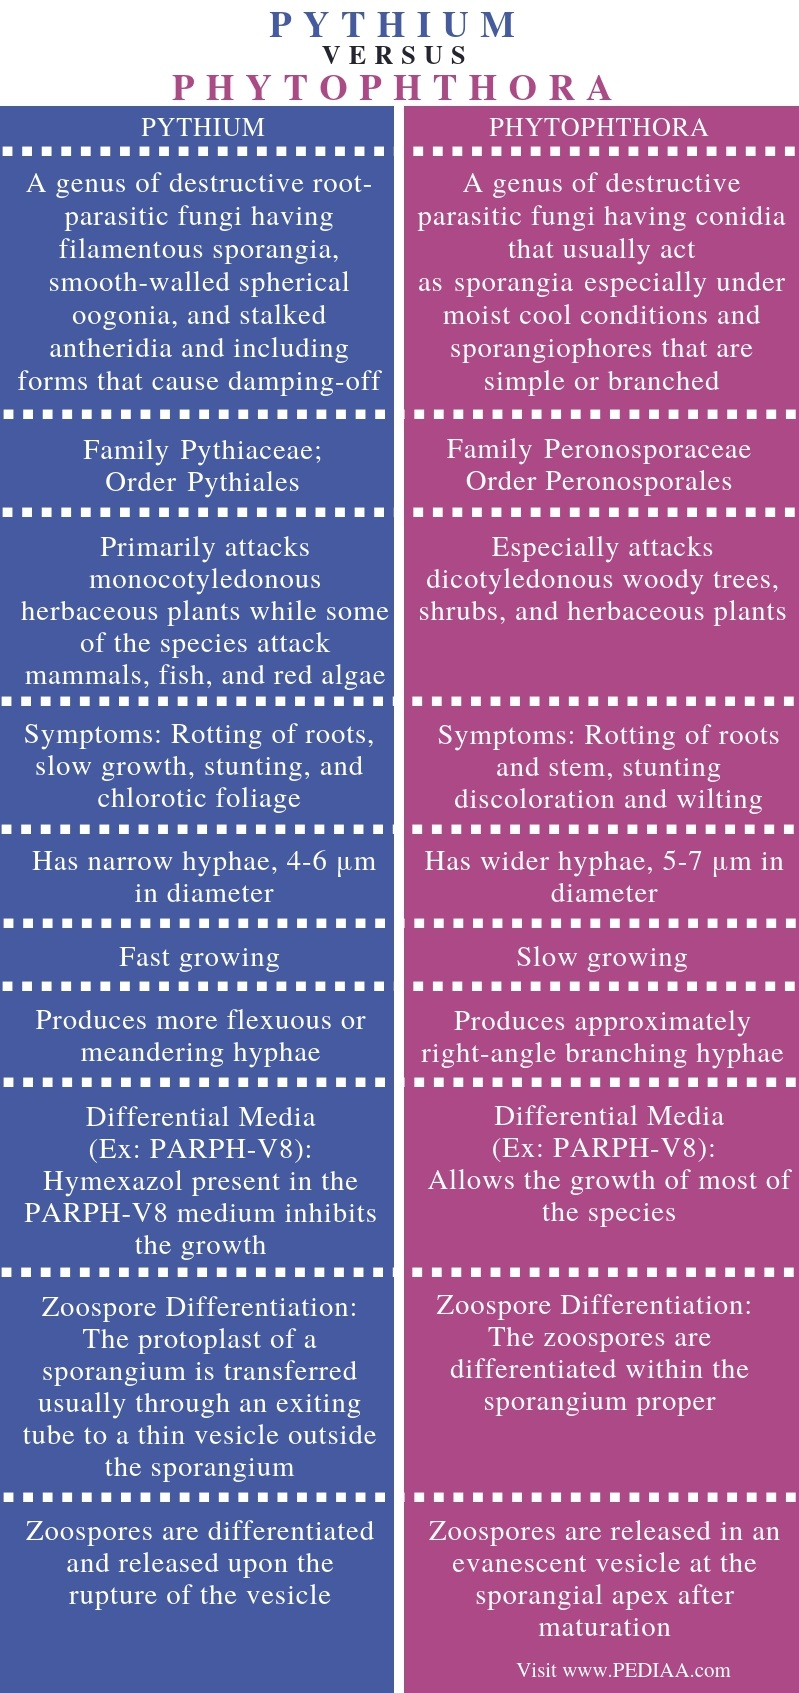 Difference Between Pythium and Phytophthora - Comparison Summary